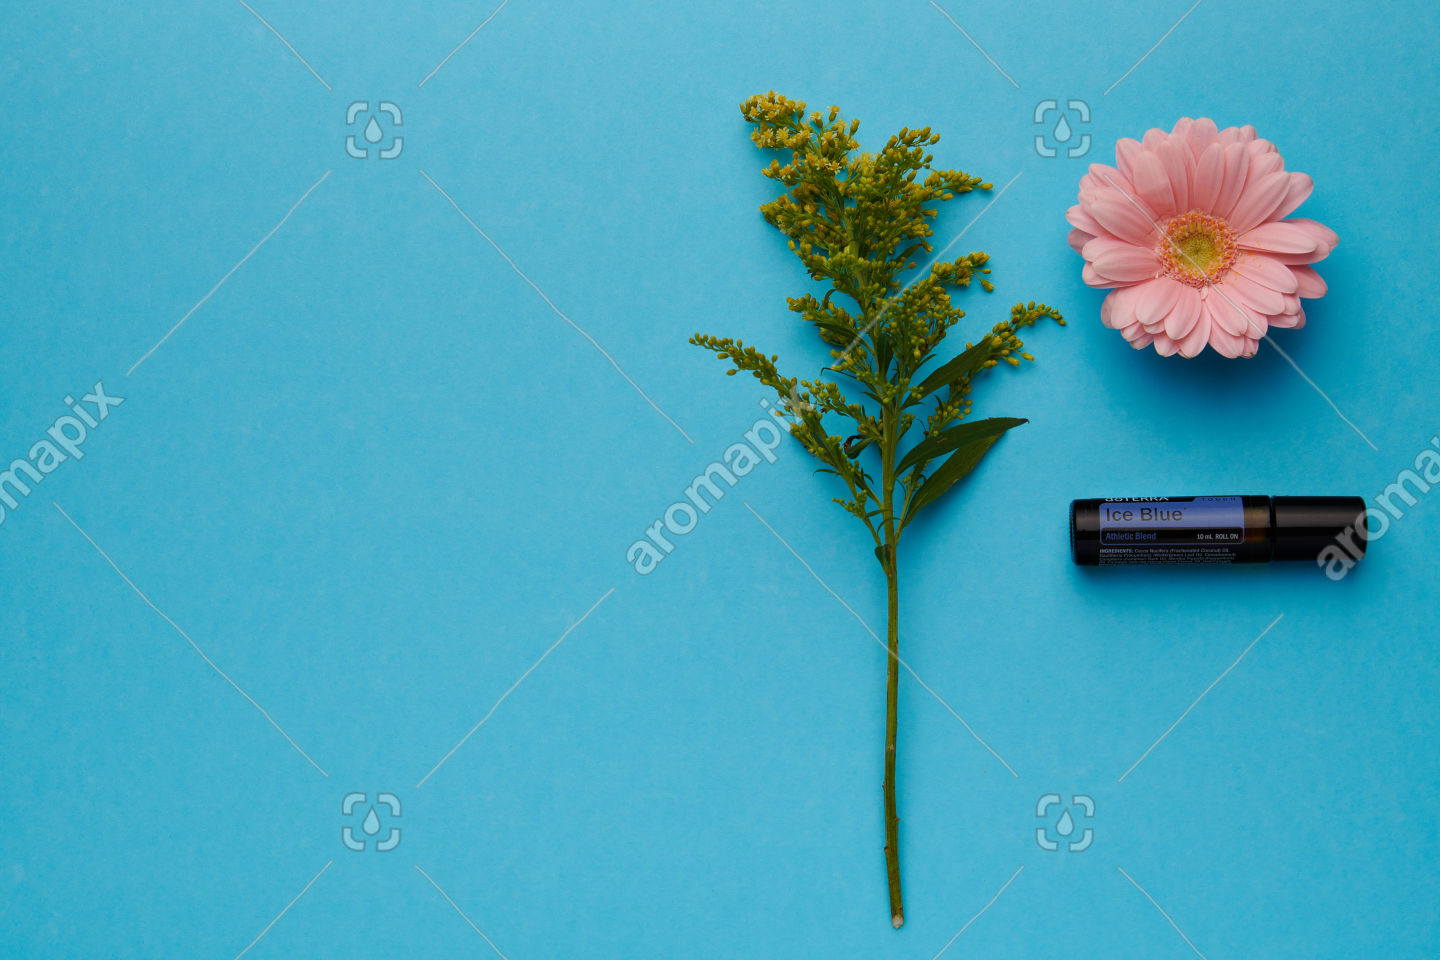 doTERRA Ice Blue Touch with flowers on blue